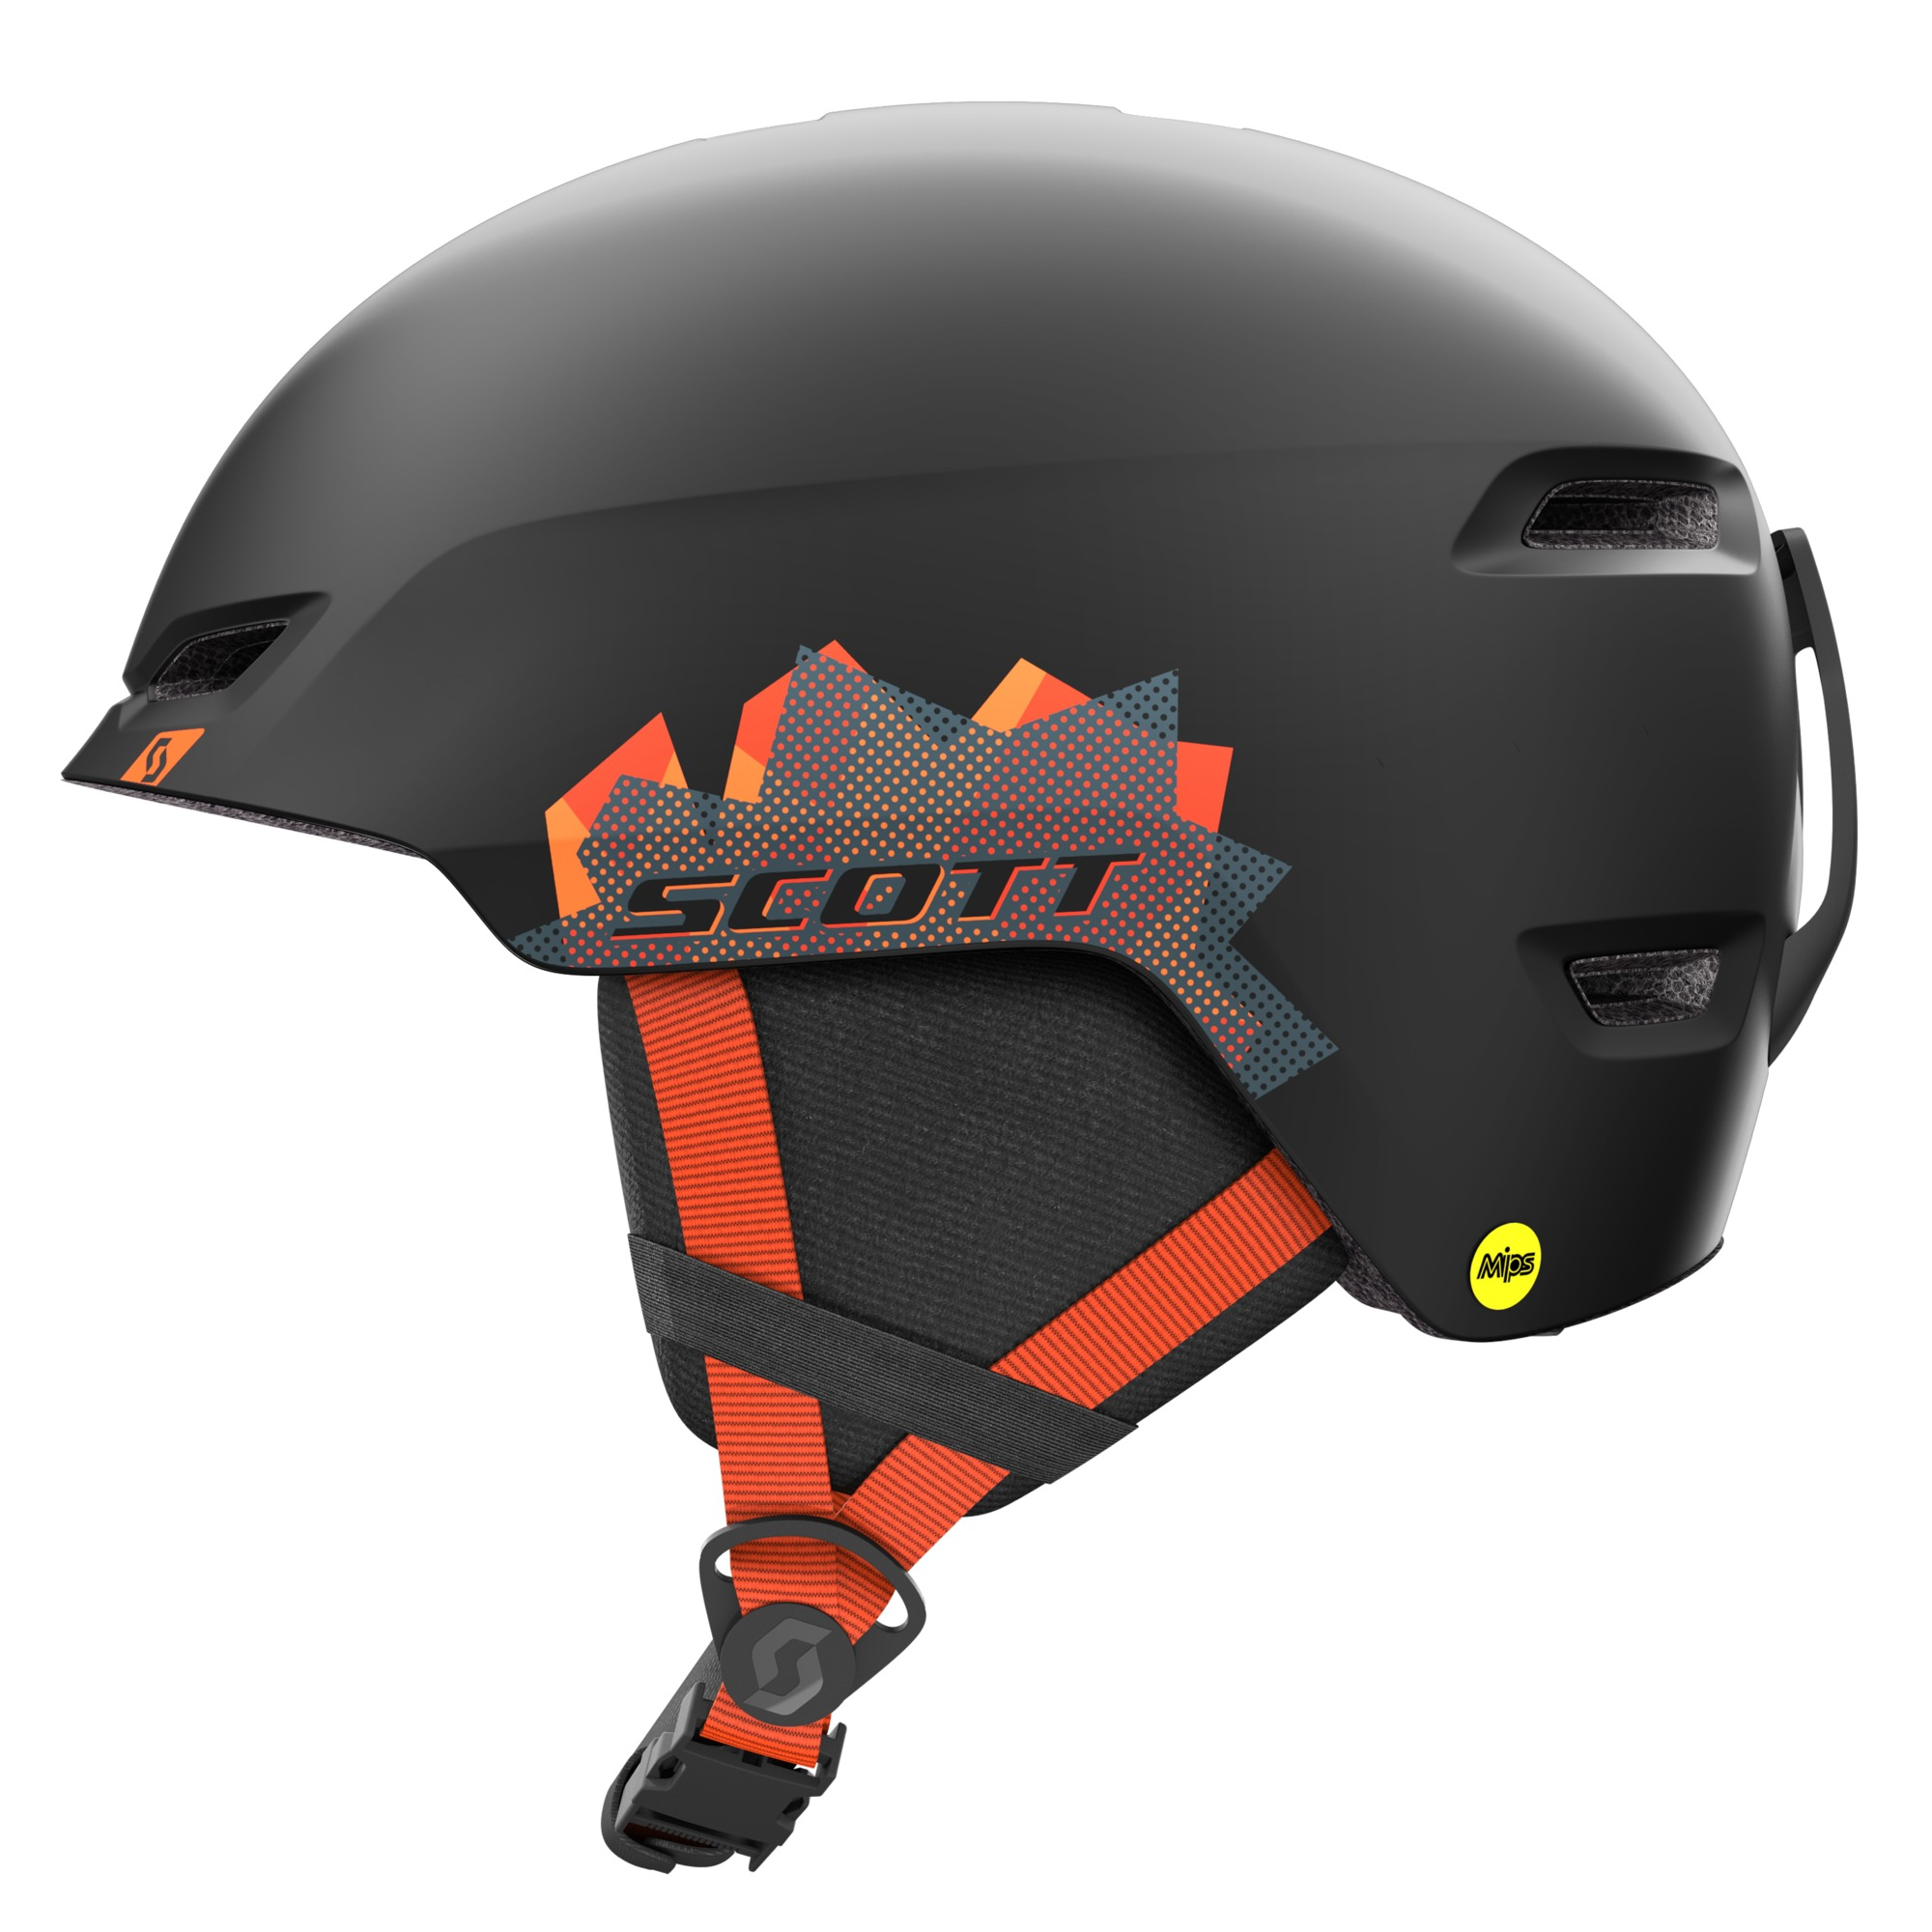 Keeper 2 Plus Helmet